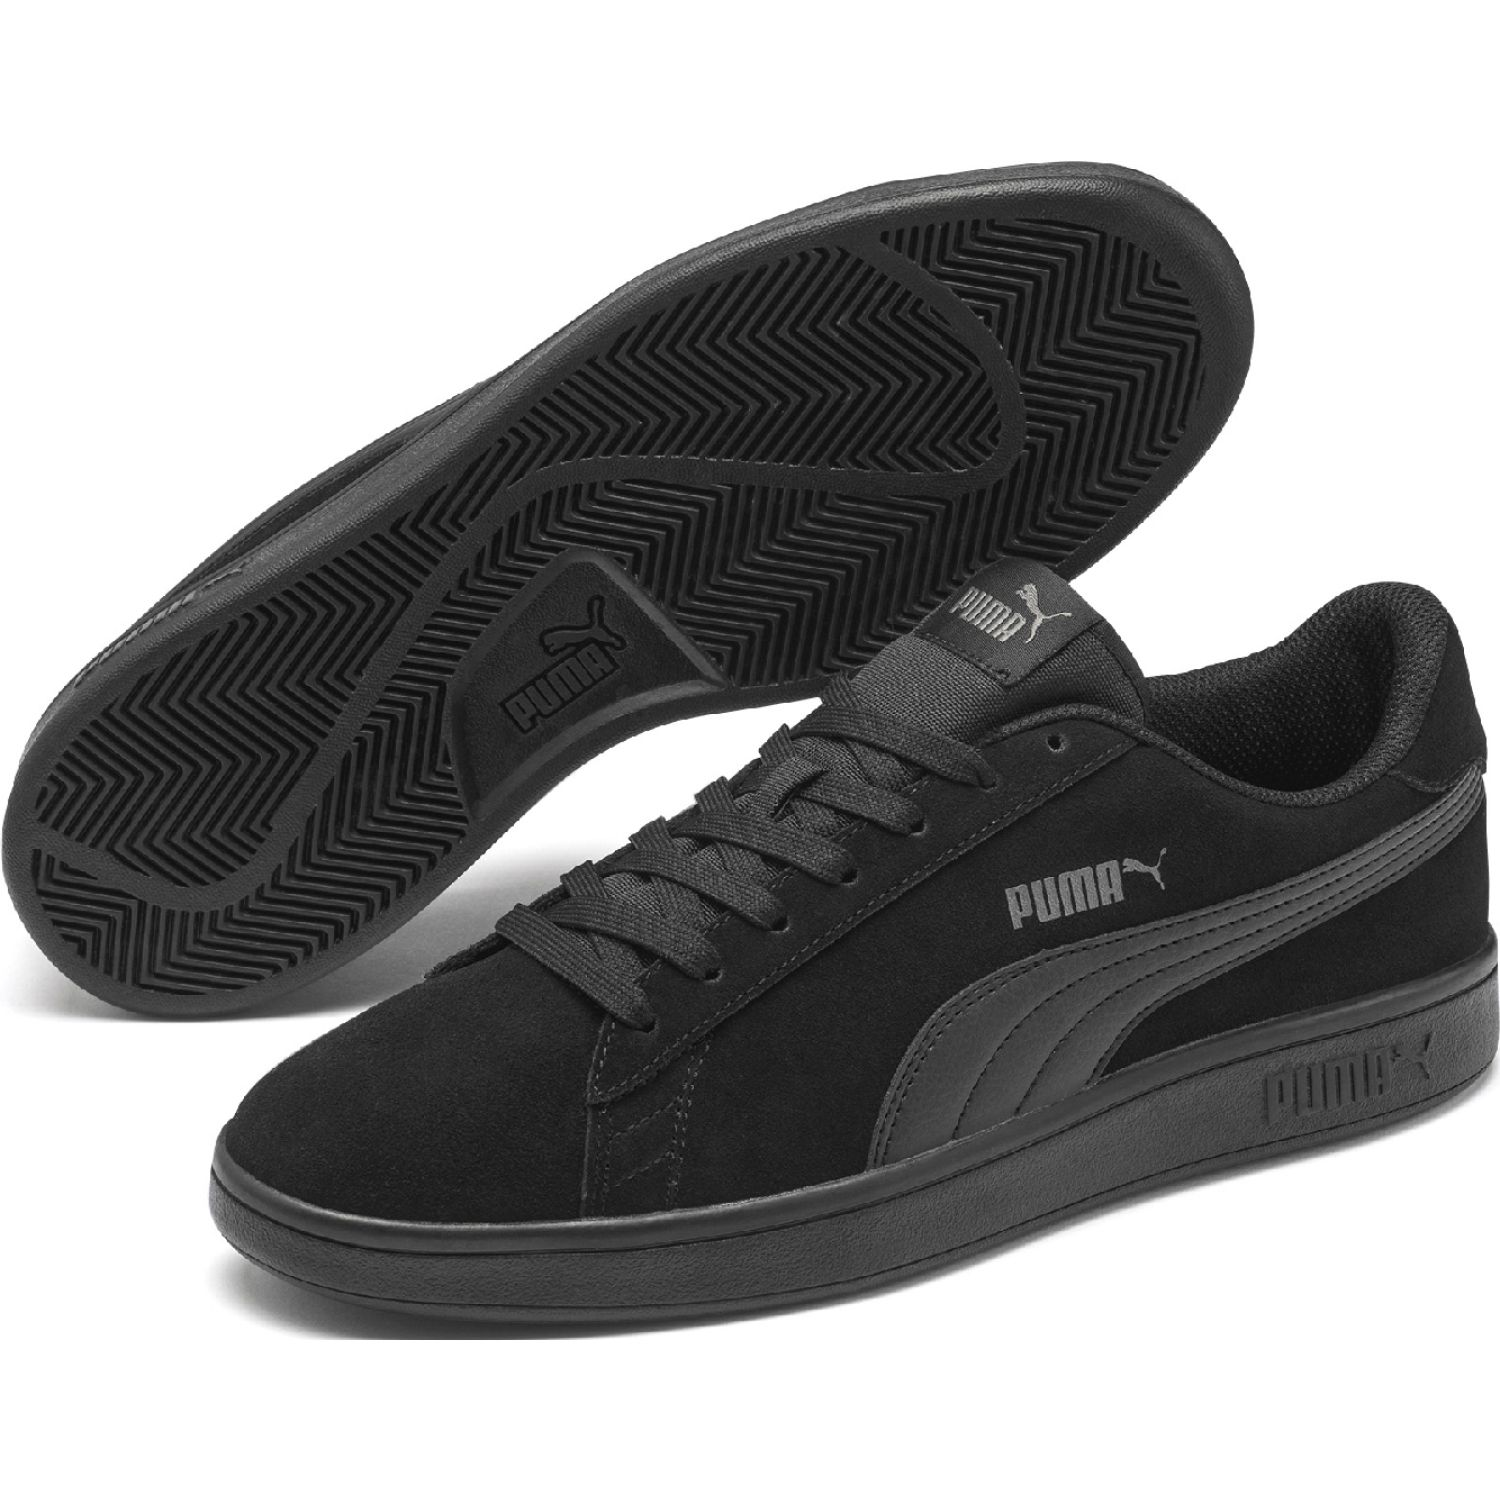 Puma puma smash v2 Negro / verde Walking